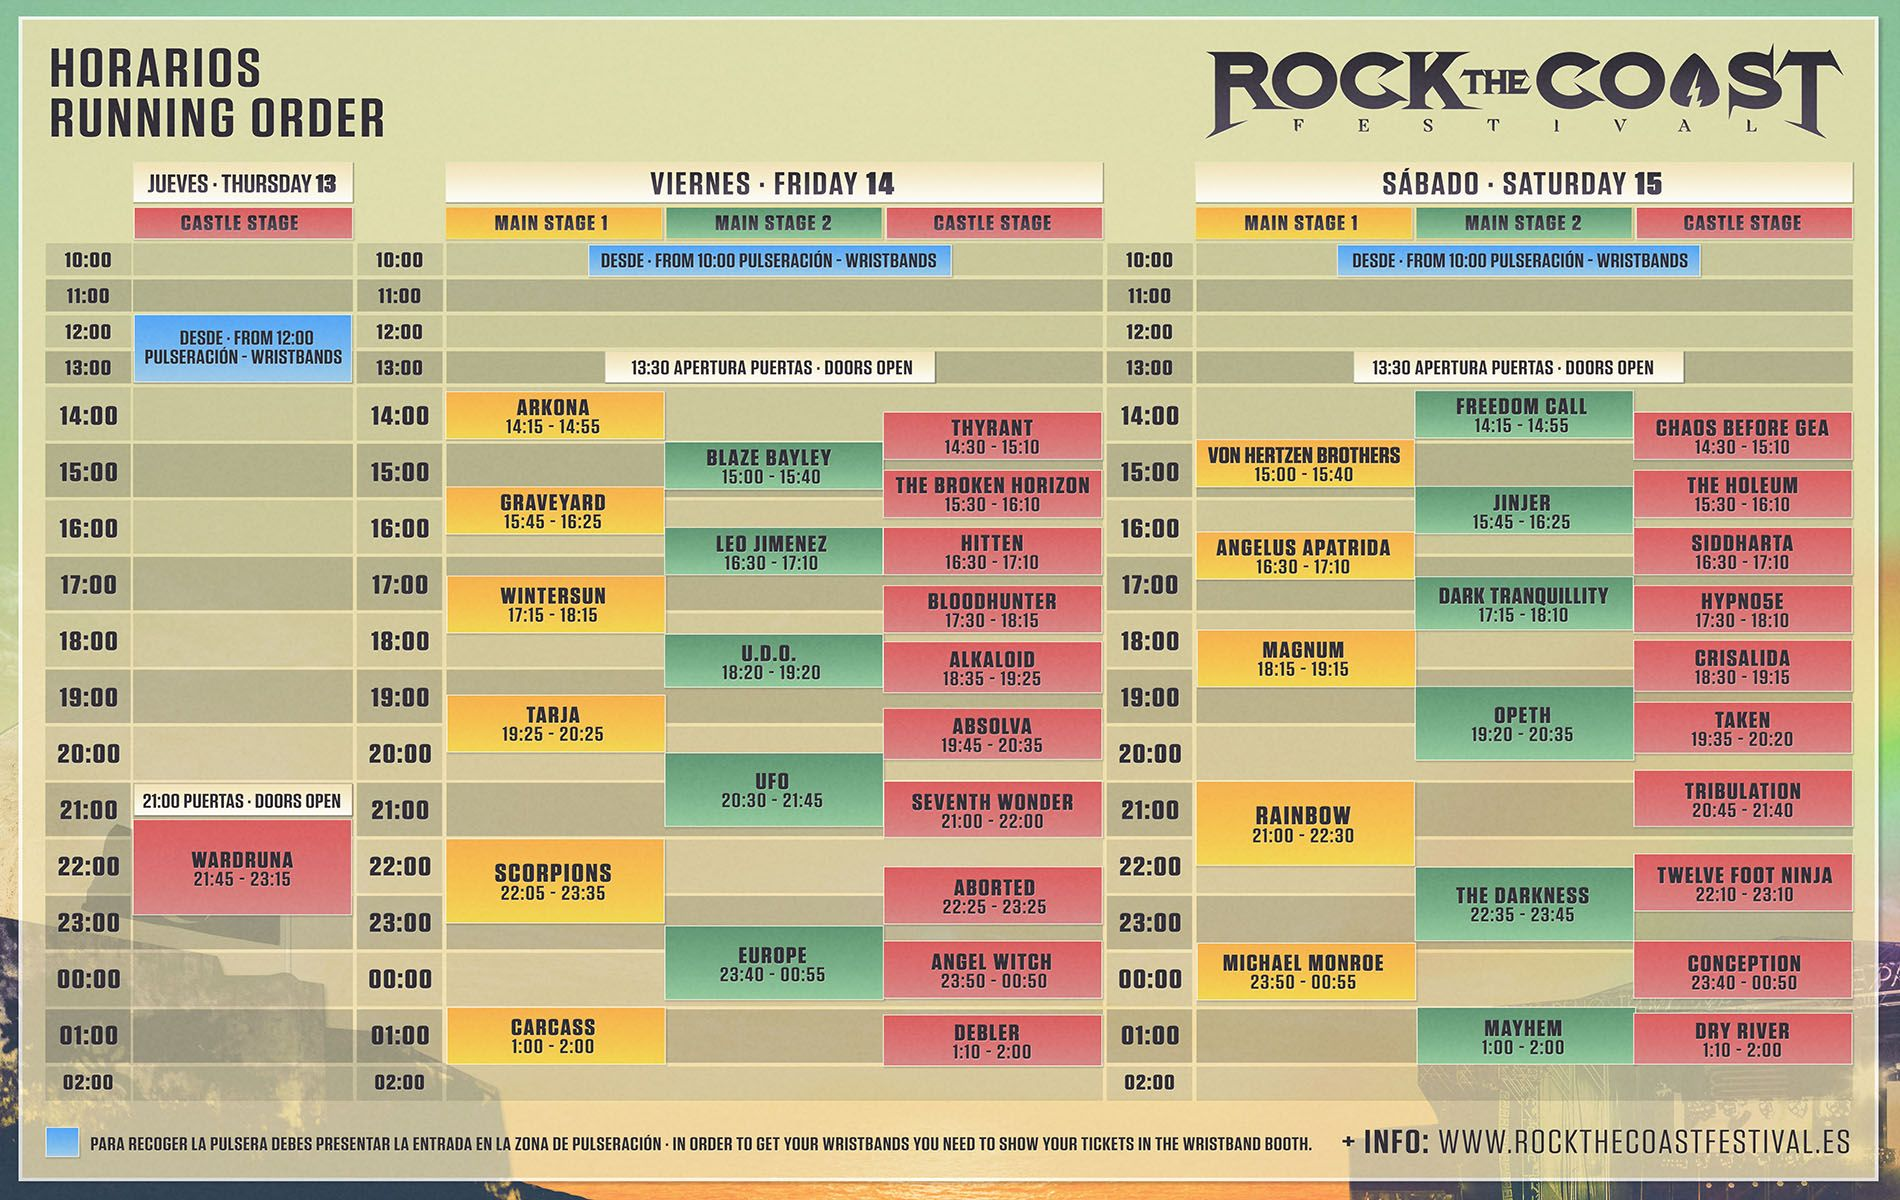 horarios-rock.the-coast